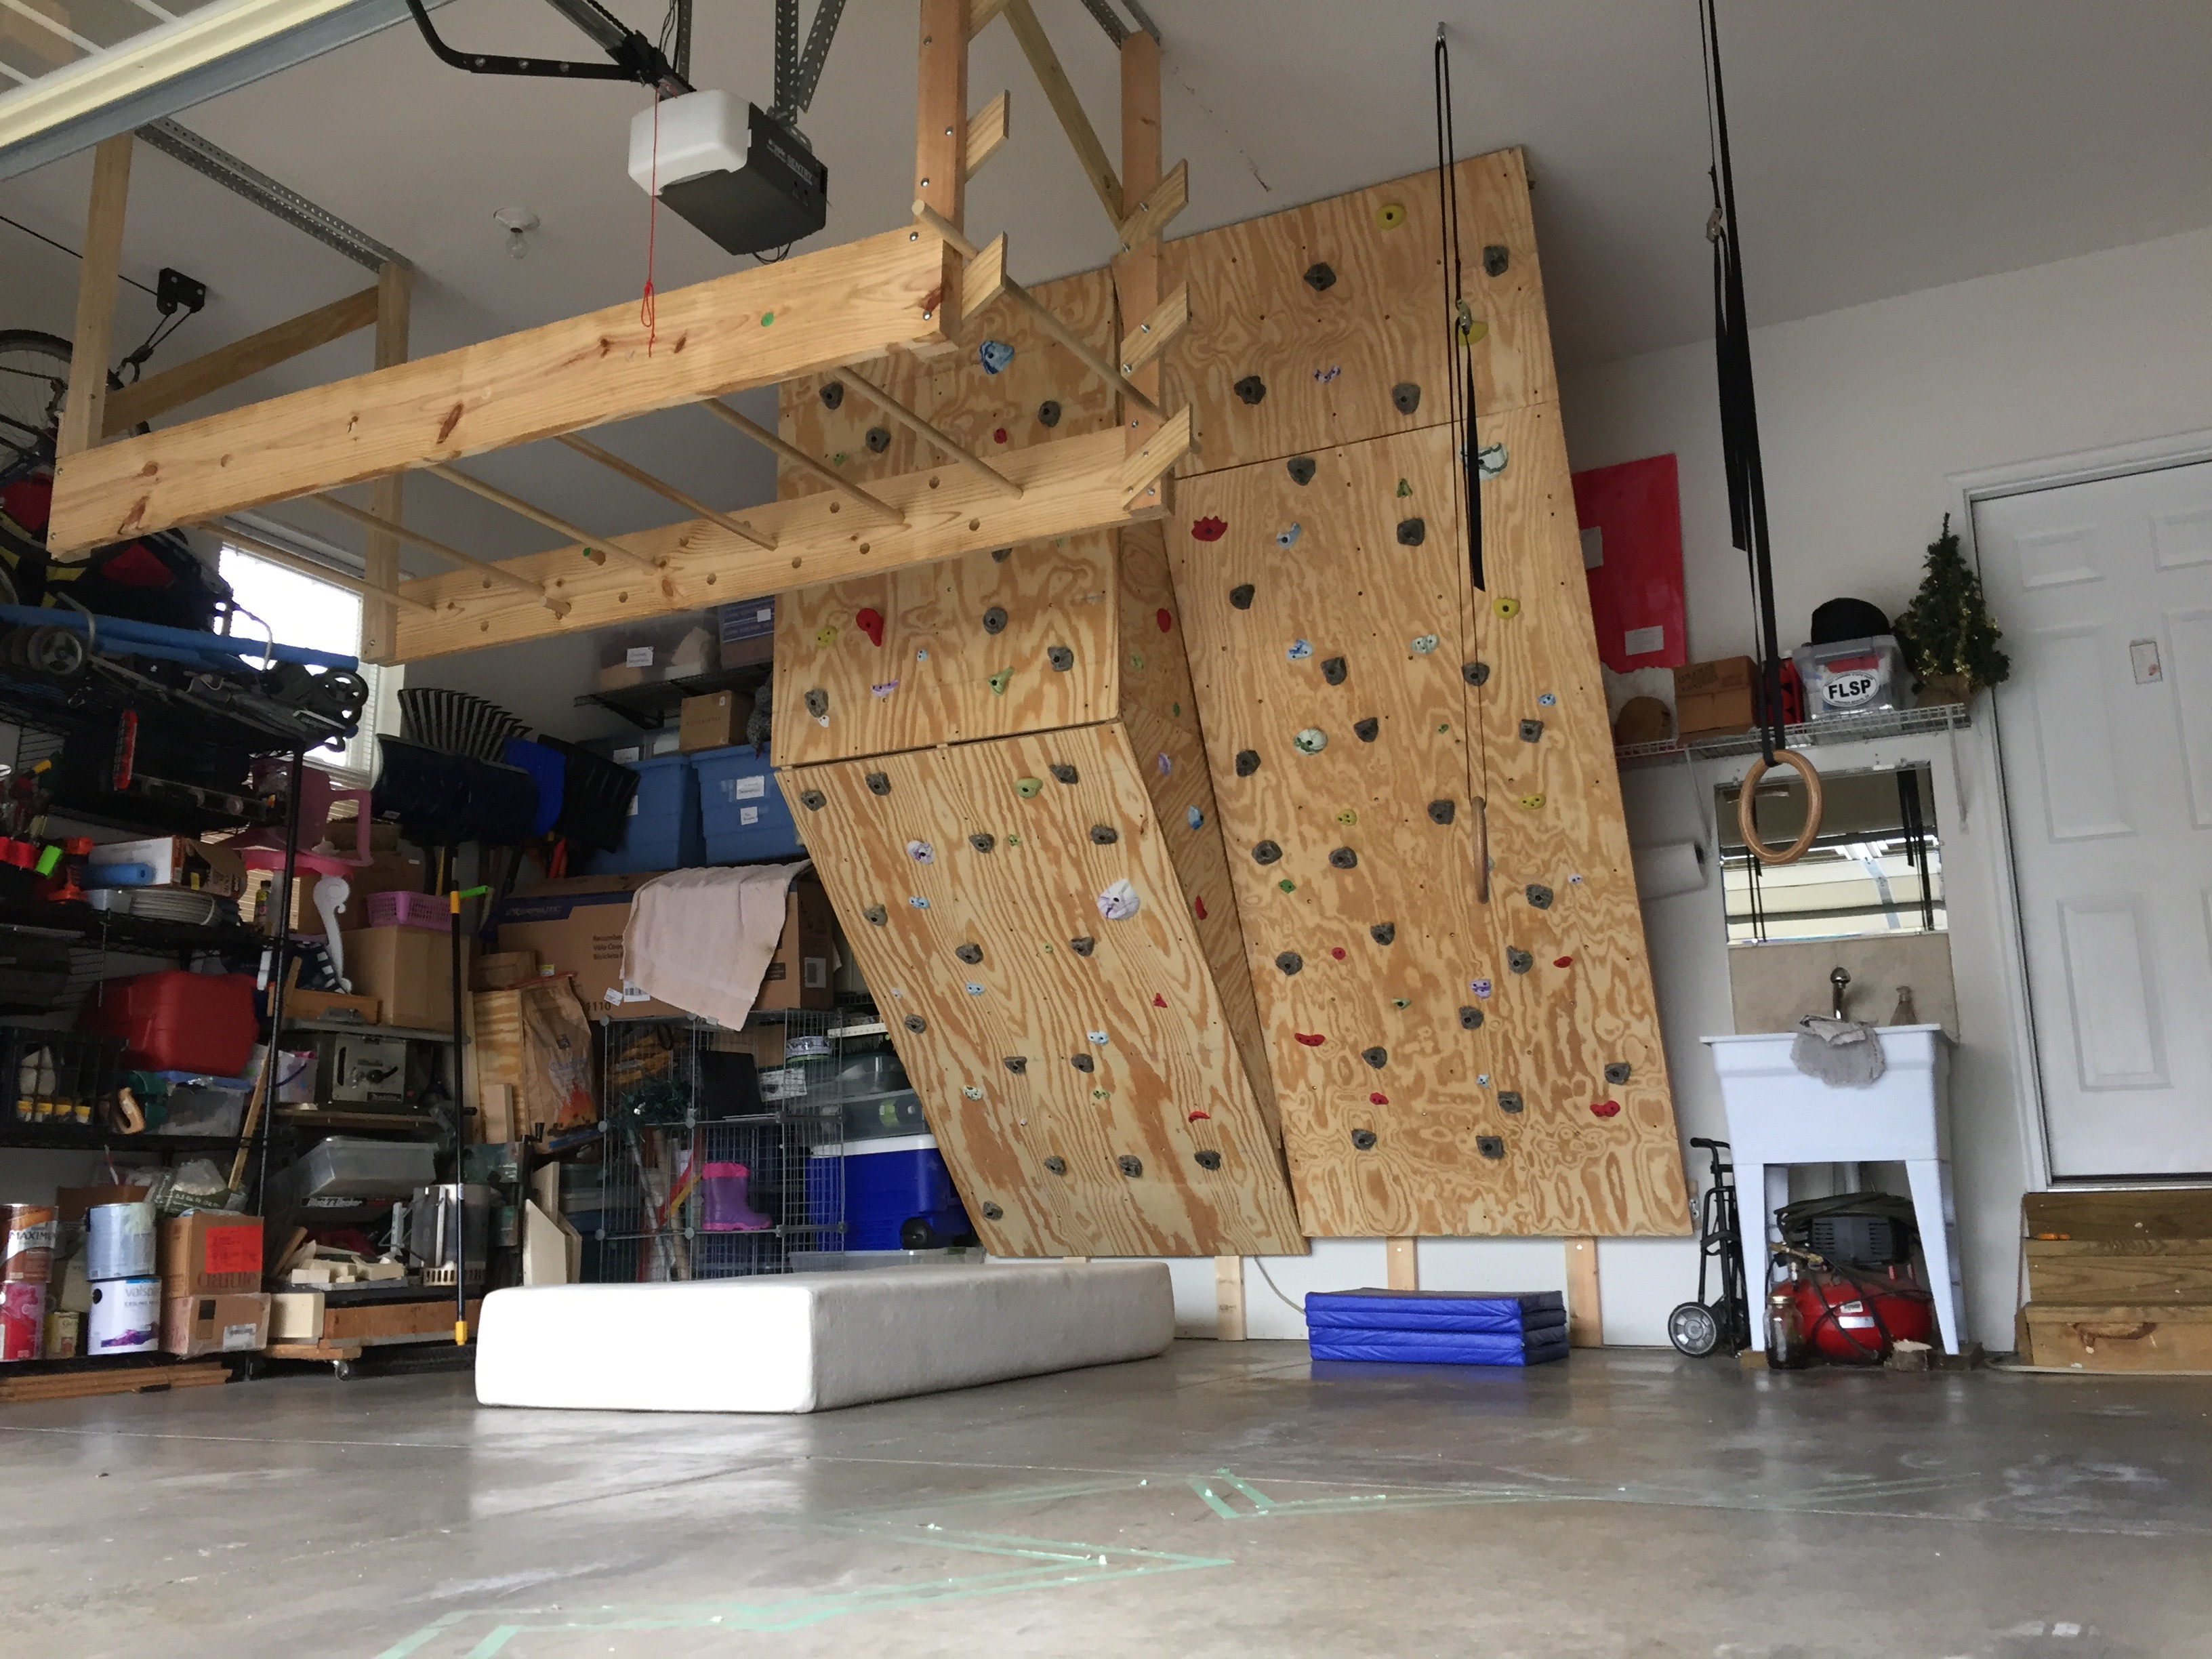 The bouldering wall rounds out the garage